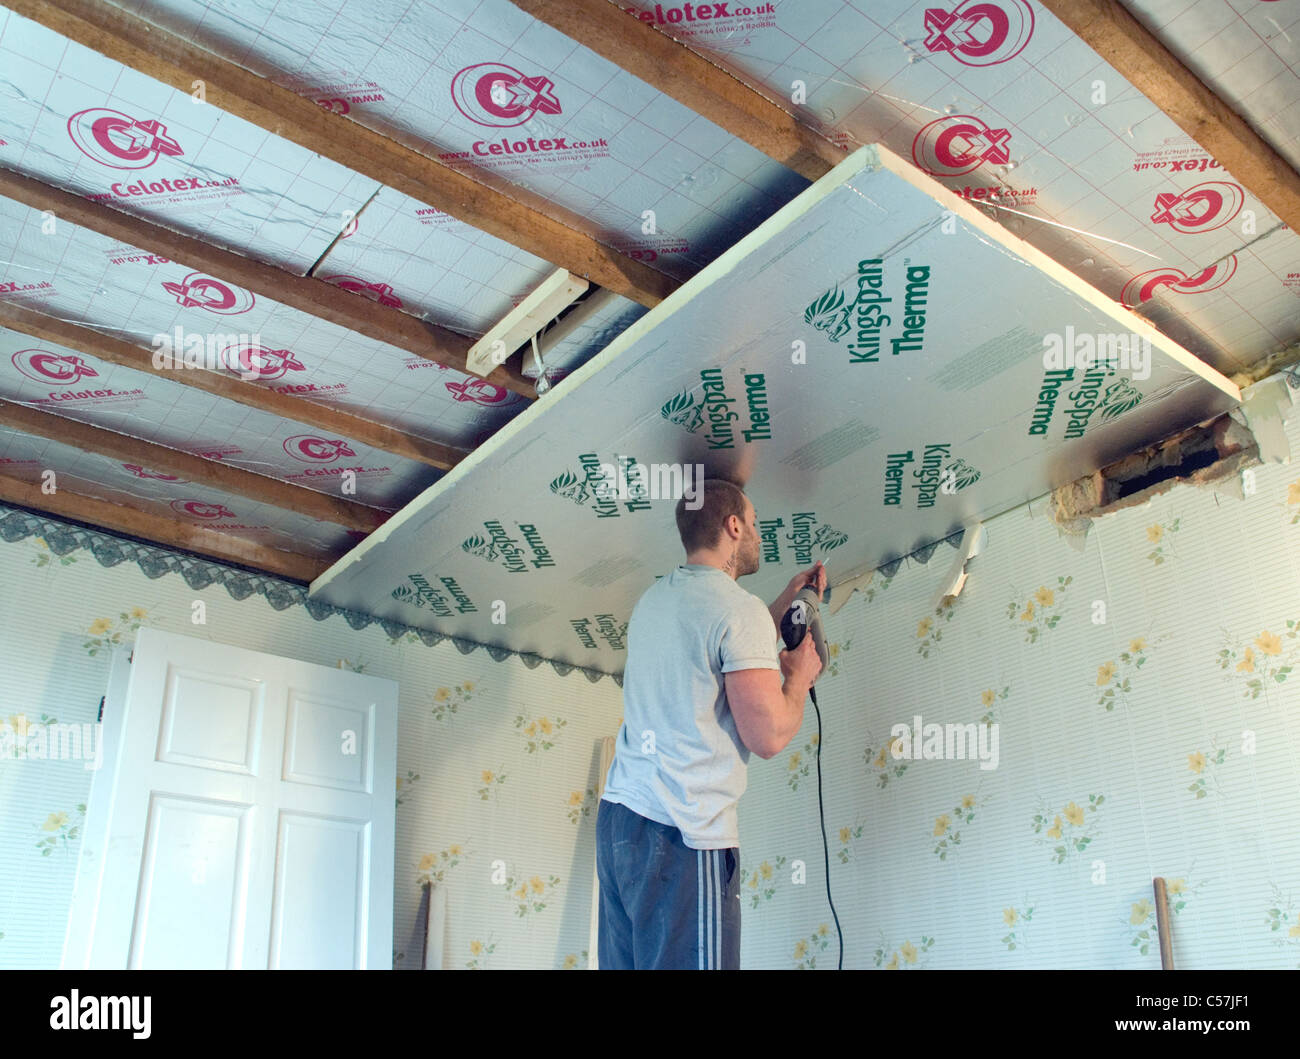 Builders warehouse ceiling insulation energywarden ing interior insulation stock photos builders warehouse ceiling tiles dailygadgetfo Choice Image